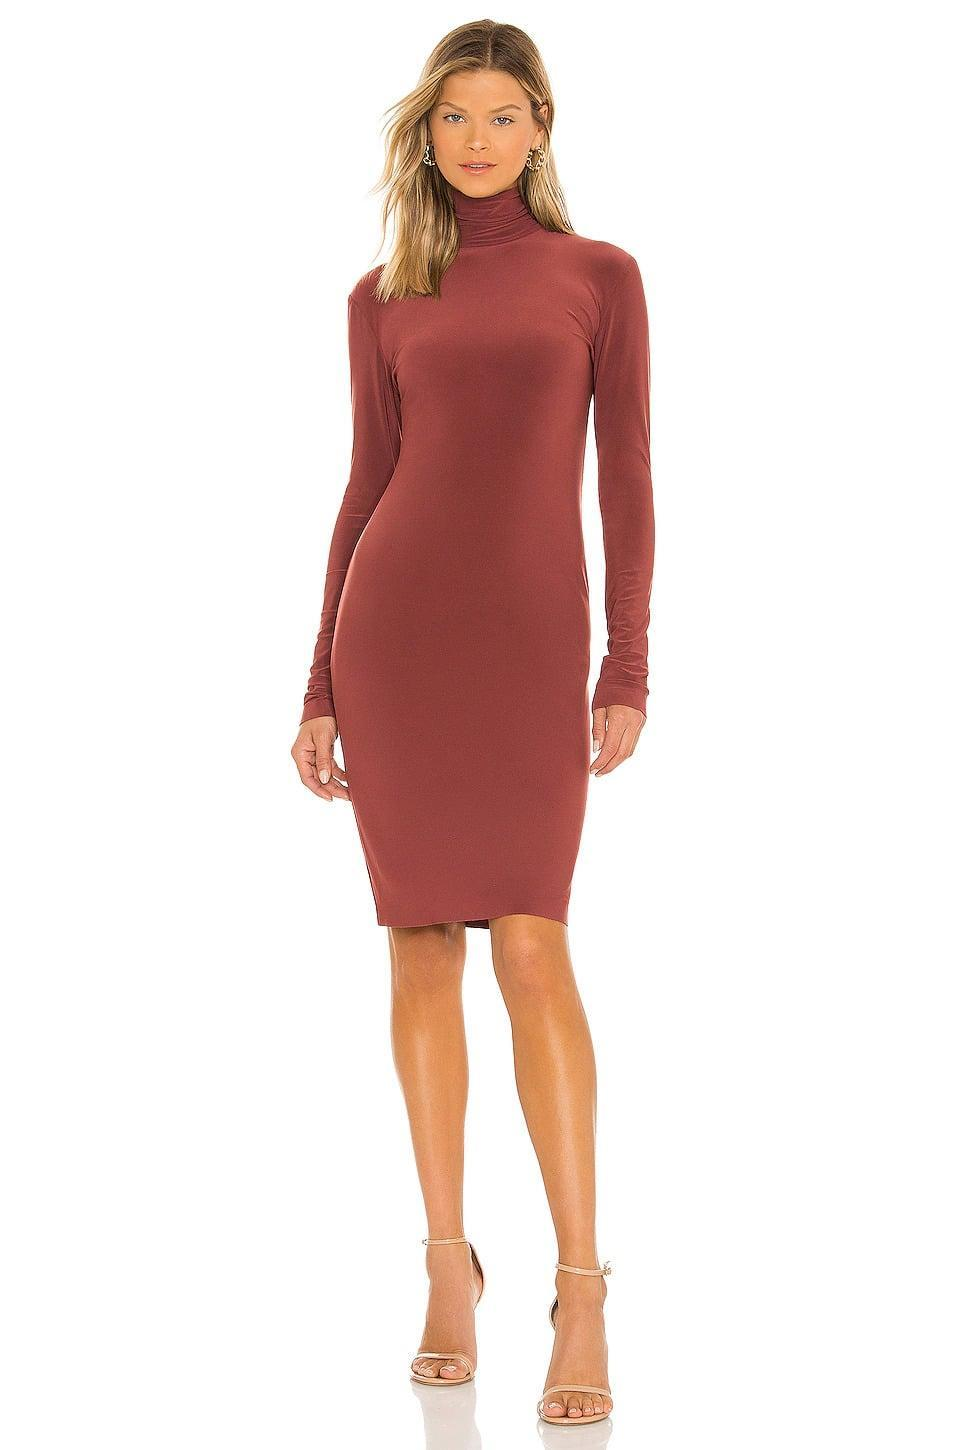 <p>Look stylish without sacrificing warmth in this <span>Norma Kamali Long Sleeve Turtleneck Dress in Copper</span> ($125). The color is divine, the silhouette is ultra-flattering, and it'll keep us warm during the colder months. </p>